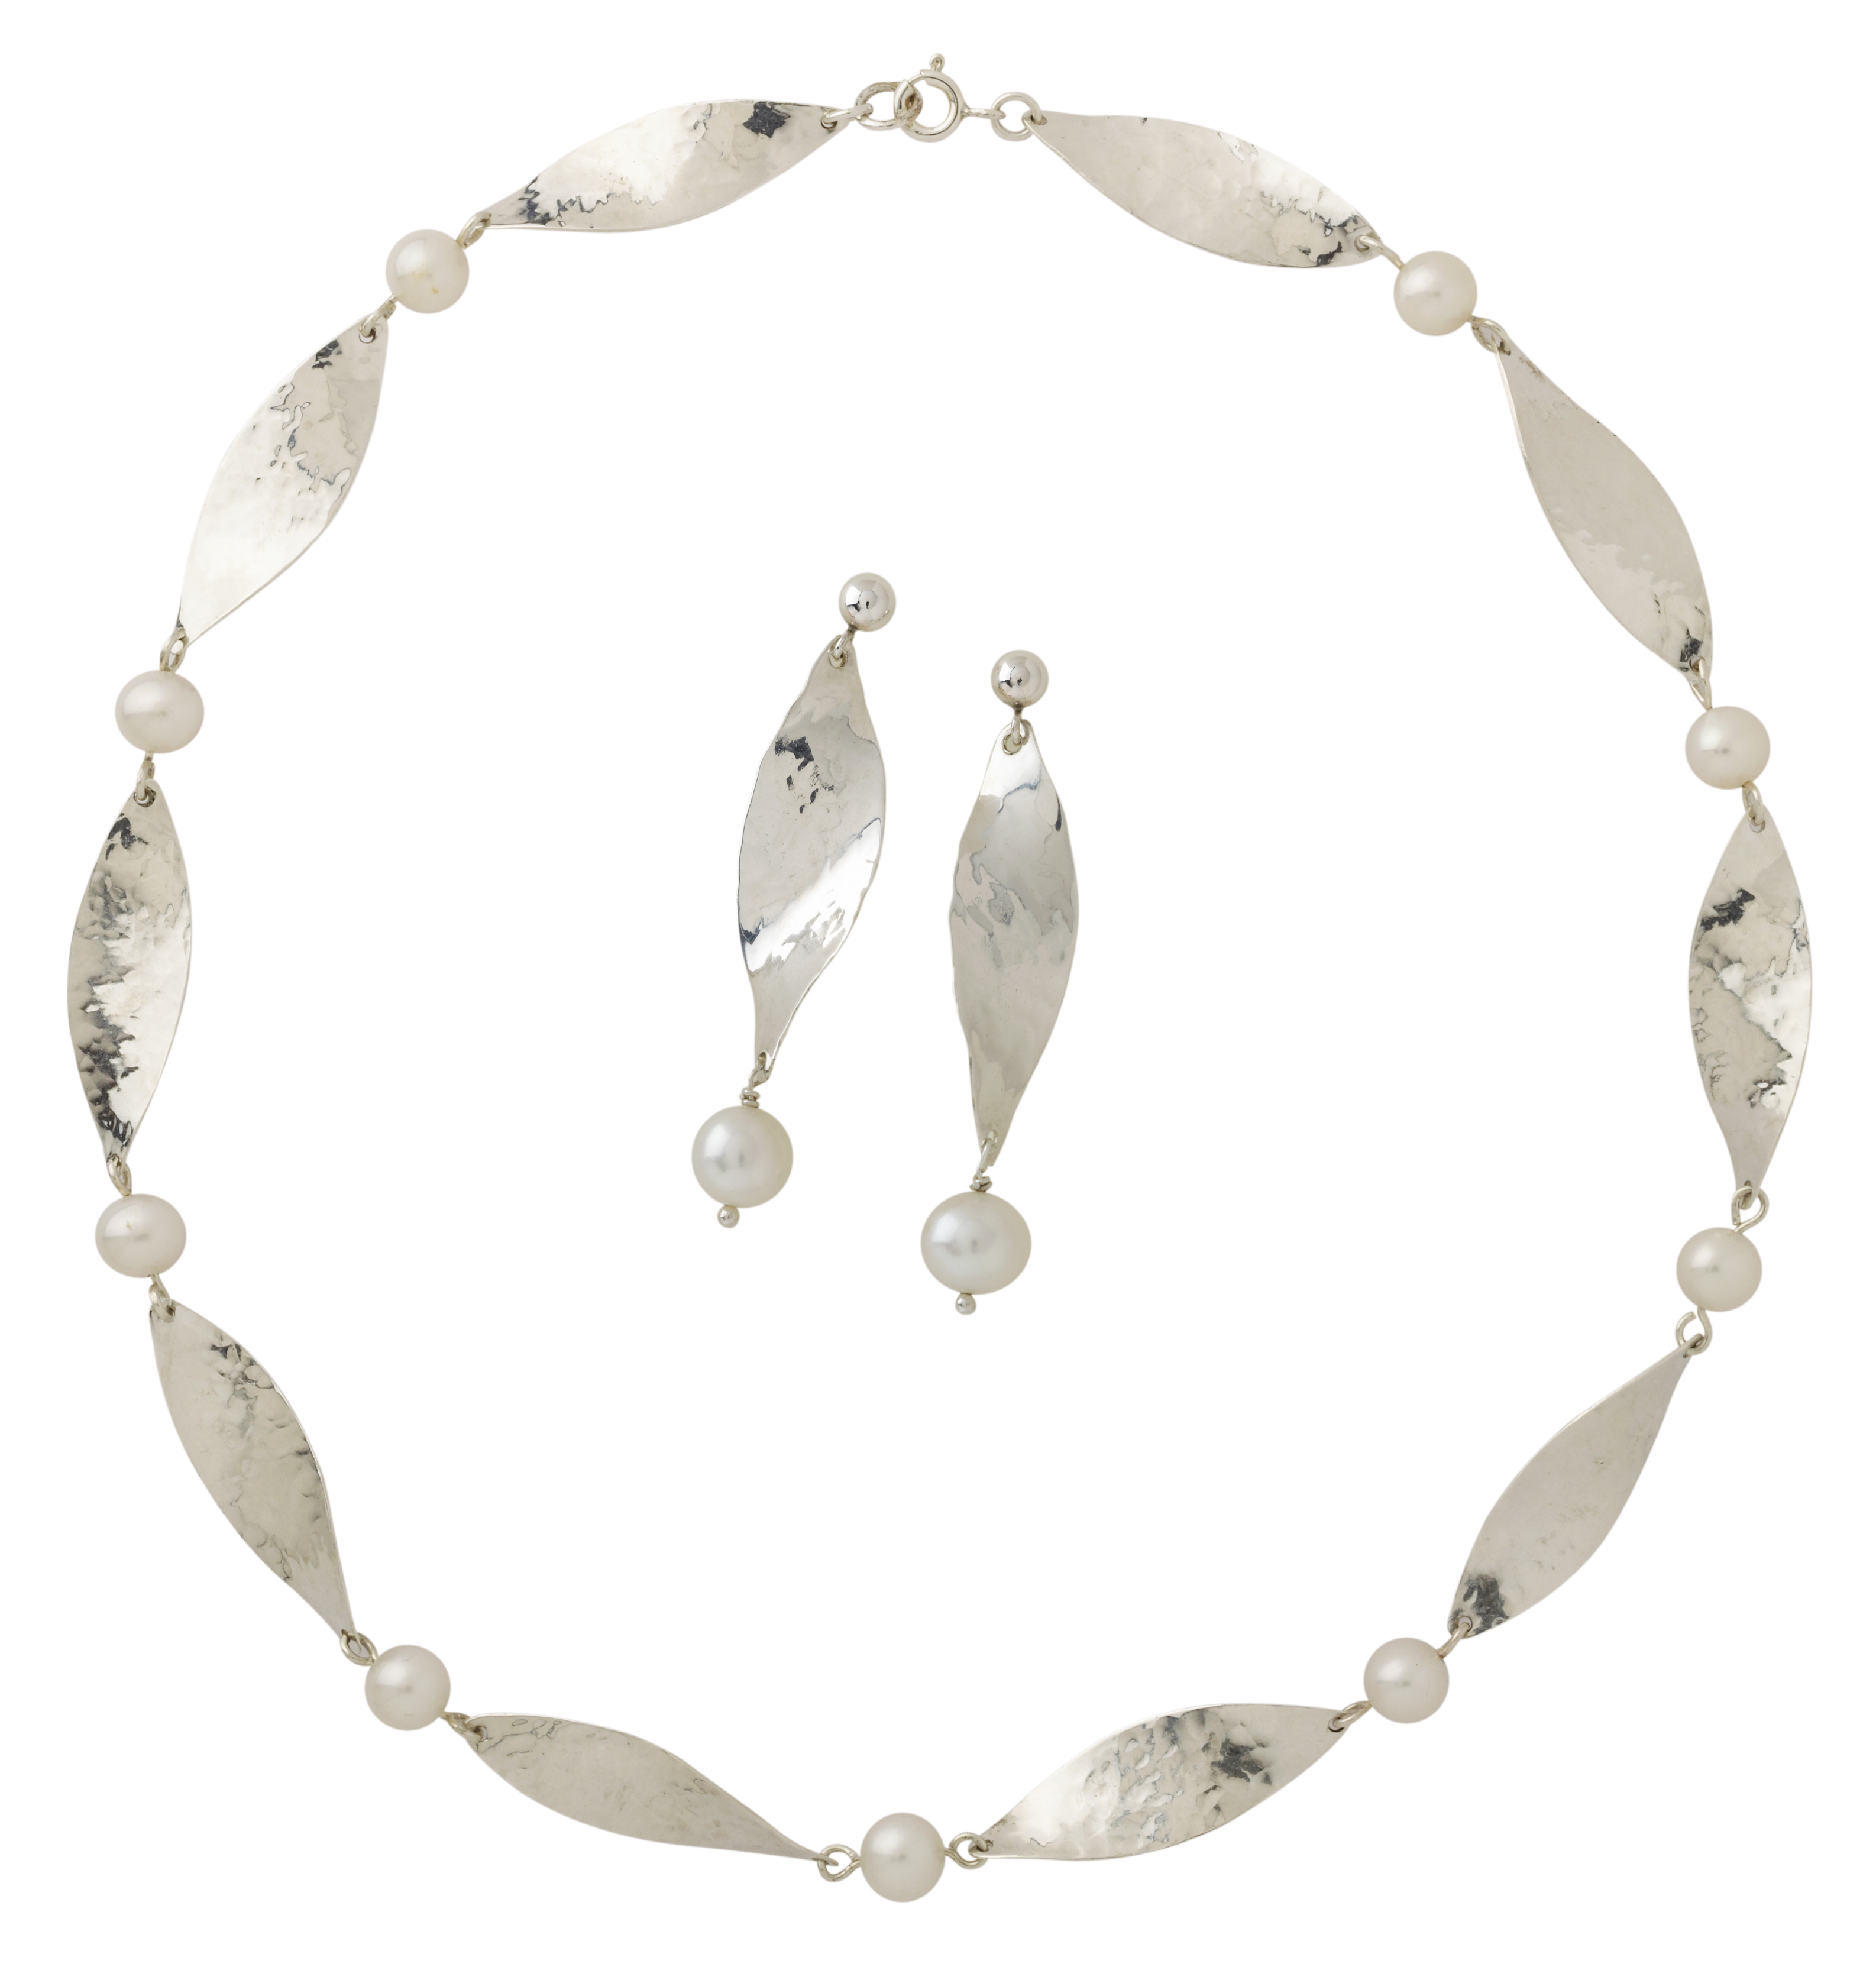 MargaretMims Silver petal necklace and earrings 300dpi